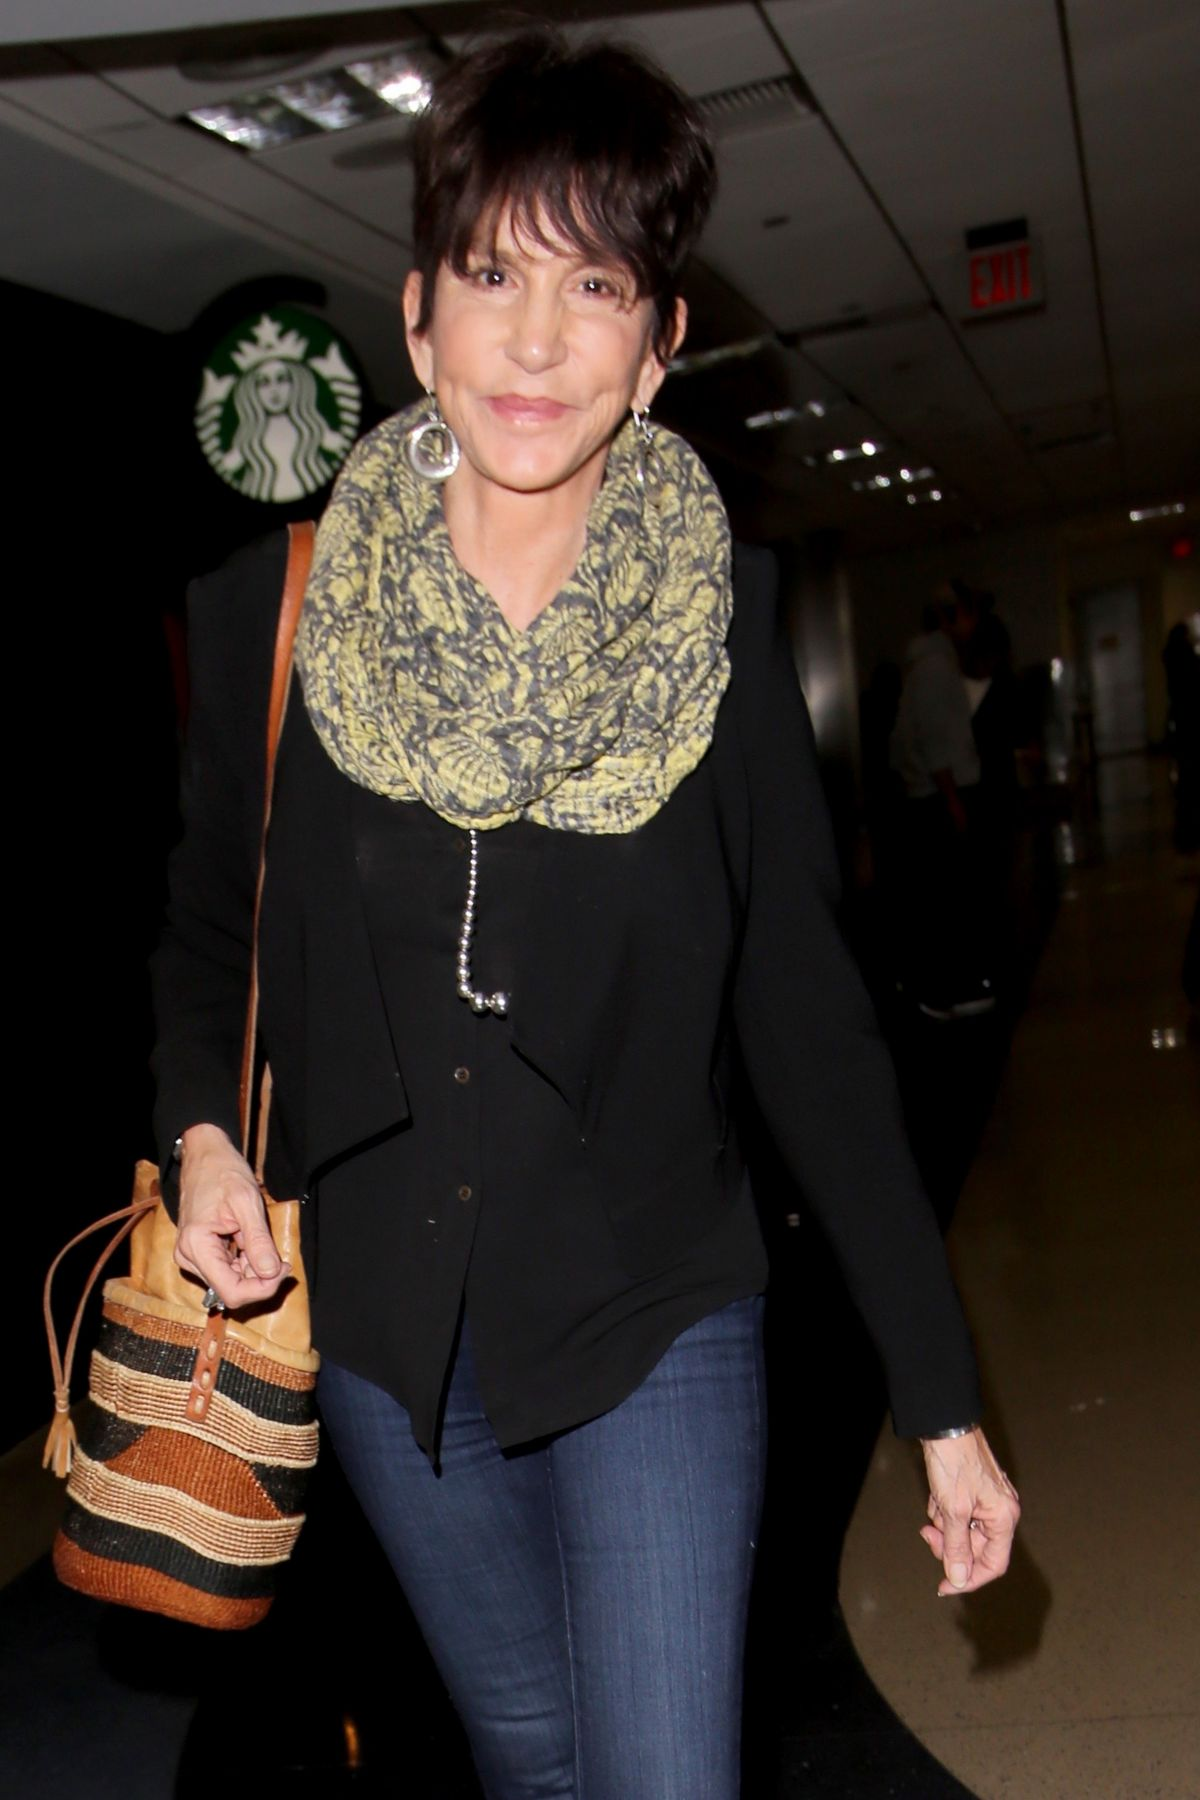 MERCEDES RUEHL at LAX Airport in Los Angeles 03/06/2017